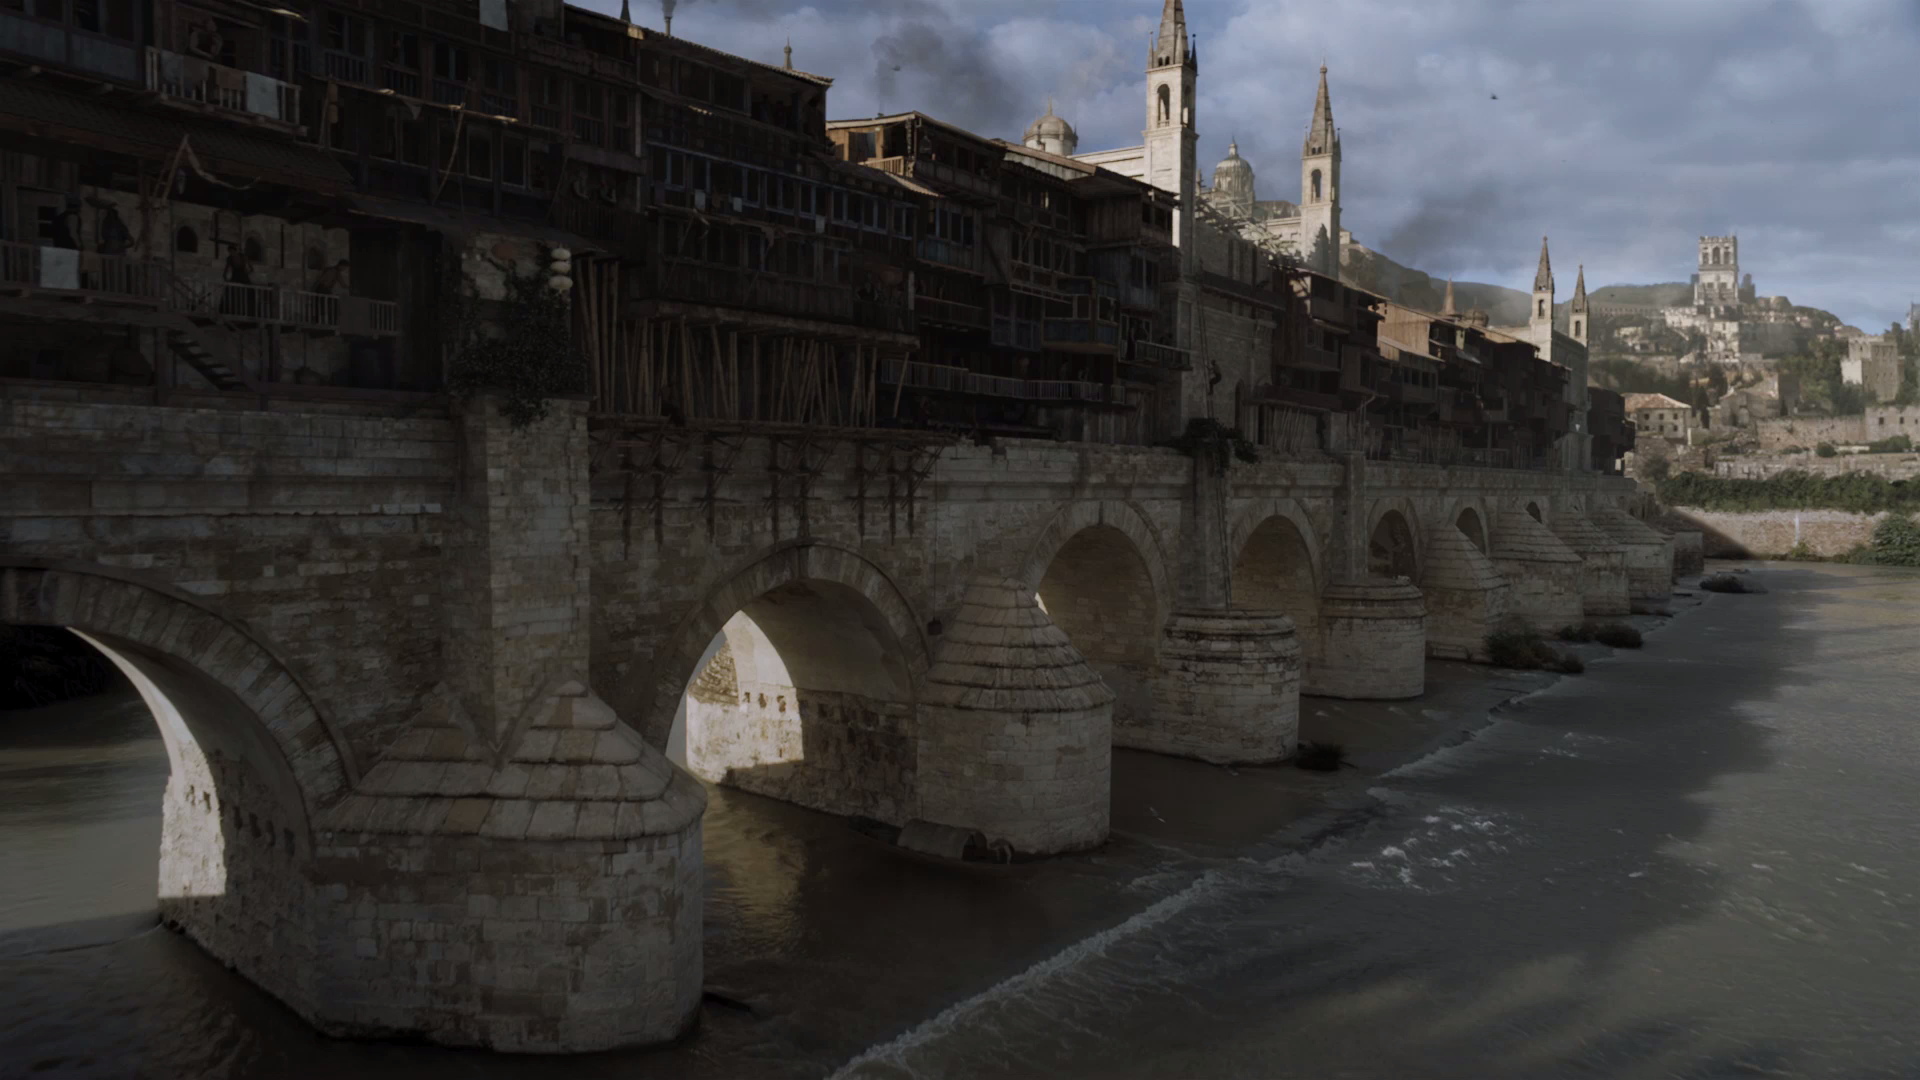 Long Bridge of Volantis - Game of Thrones, Season 6